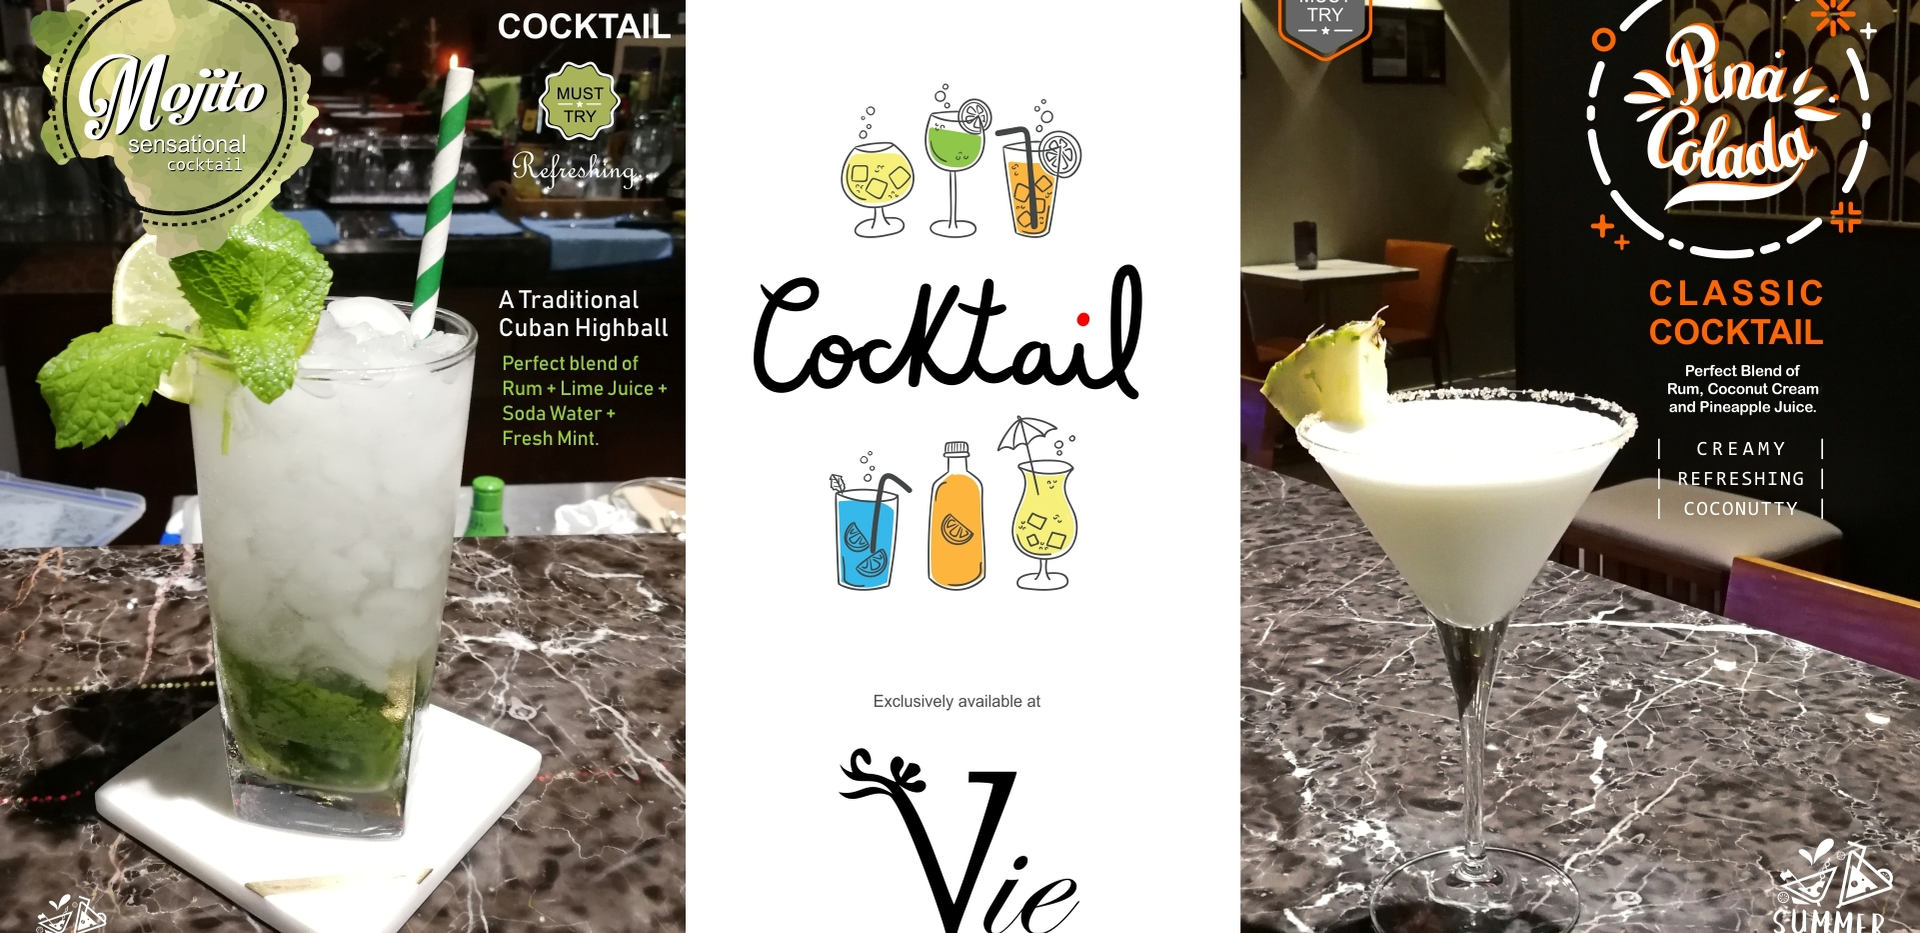 Cocktail Full HD _ Vie.jpg